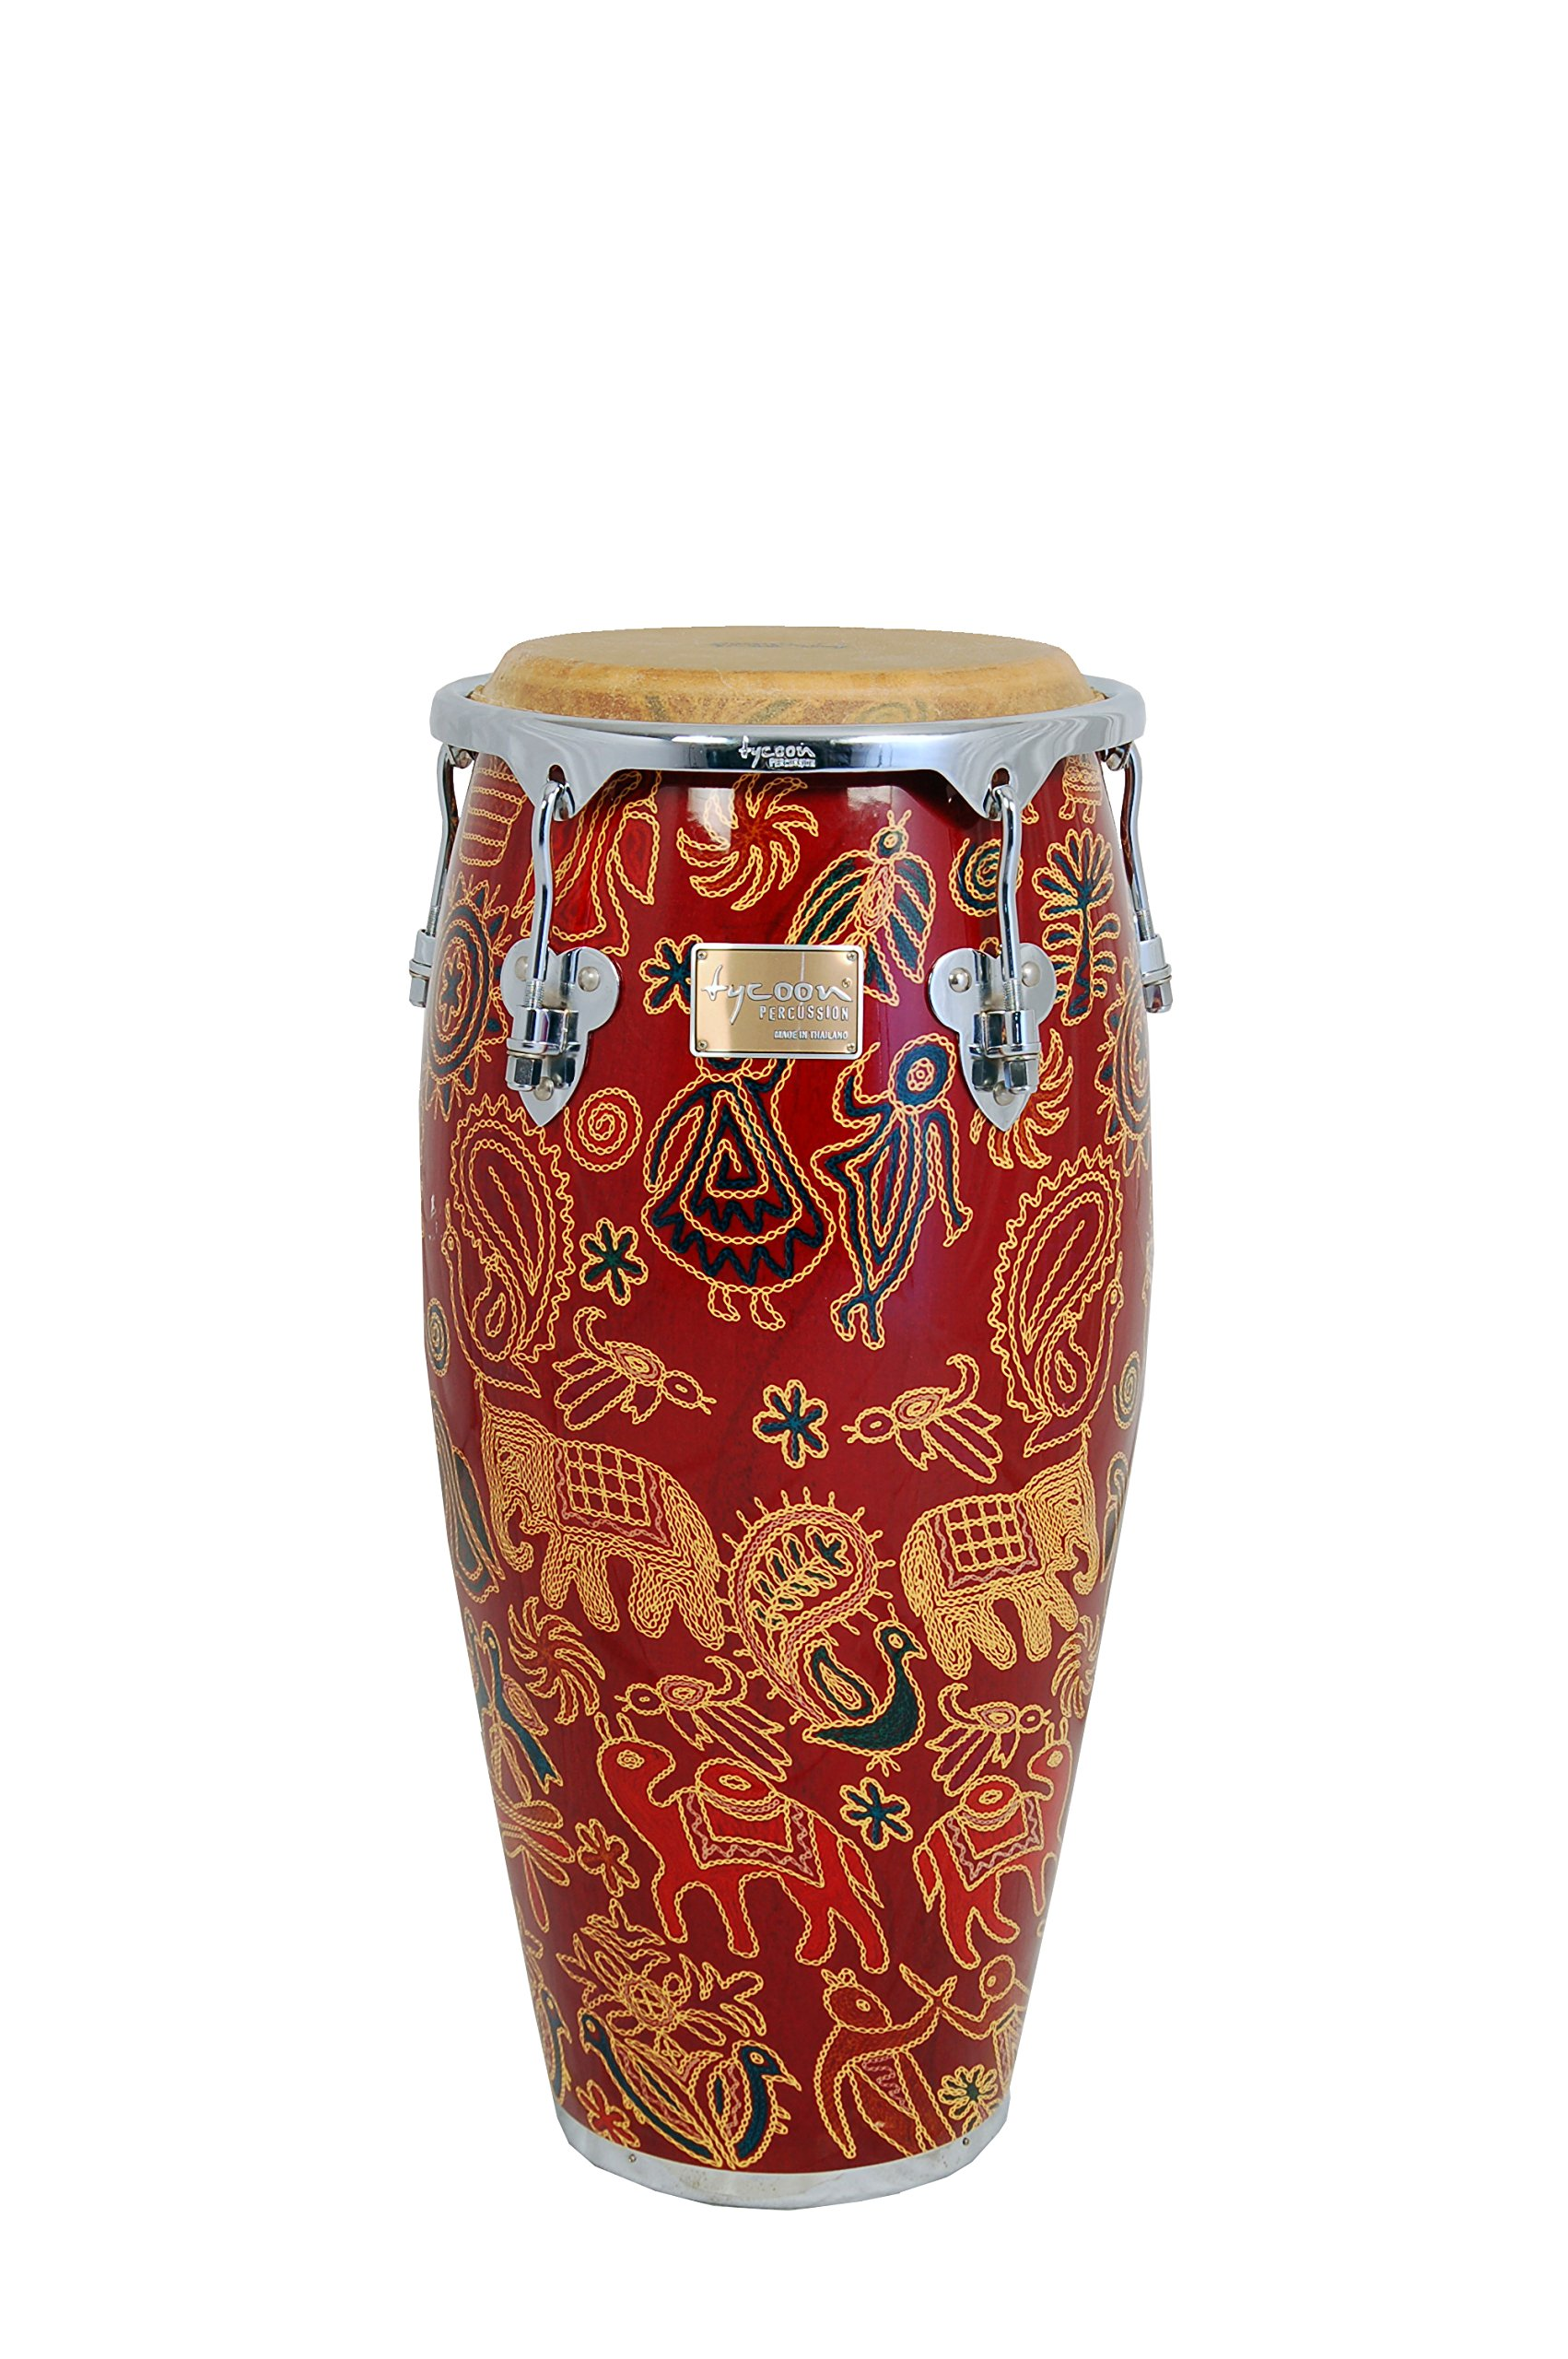 Tycoon Percussion 10 Inch Master Fantasy Siam Series Requinto With Single Stand by Tycoon Percussion